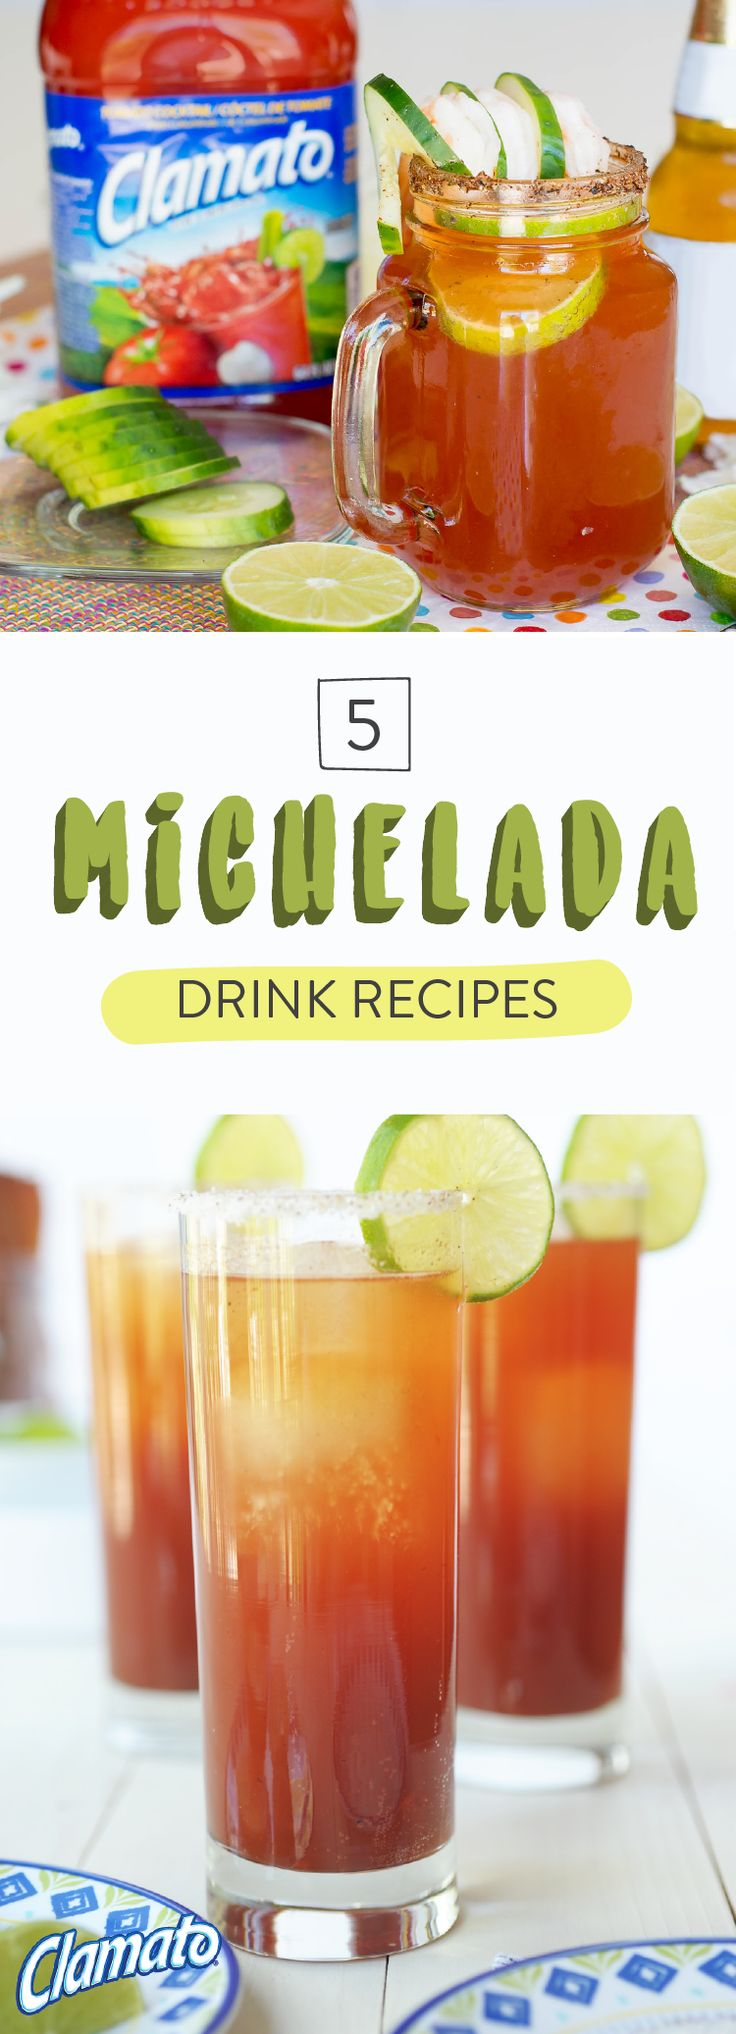 Consider this collection of 5 michelada drink recipes as your go-to for delicious cocktails all summer long. From a Michelada with Sweet and Spicy Bacon to a Mexican Michelada with Spicy Mangos, each of these boozy combinations has sweet, heat, and of course—Clamato®! Pick up all the items you need at your local Albertsons, Safeway, Pavilions, Tom Thumb, or Vons store—making planning your fiesta so much easier!